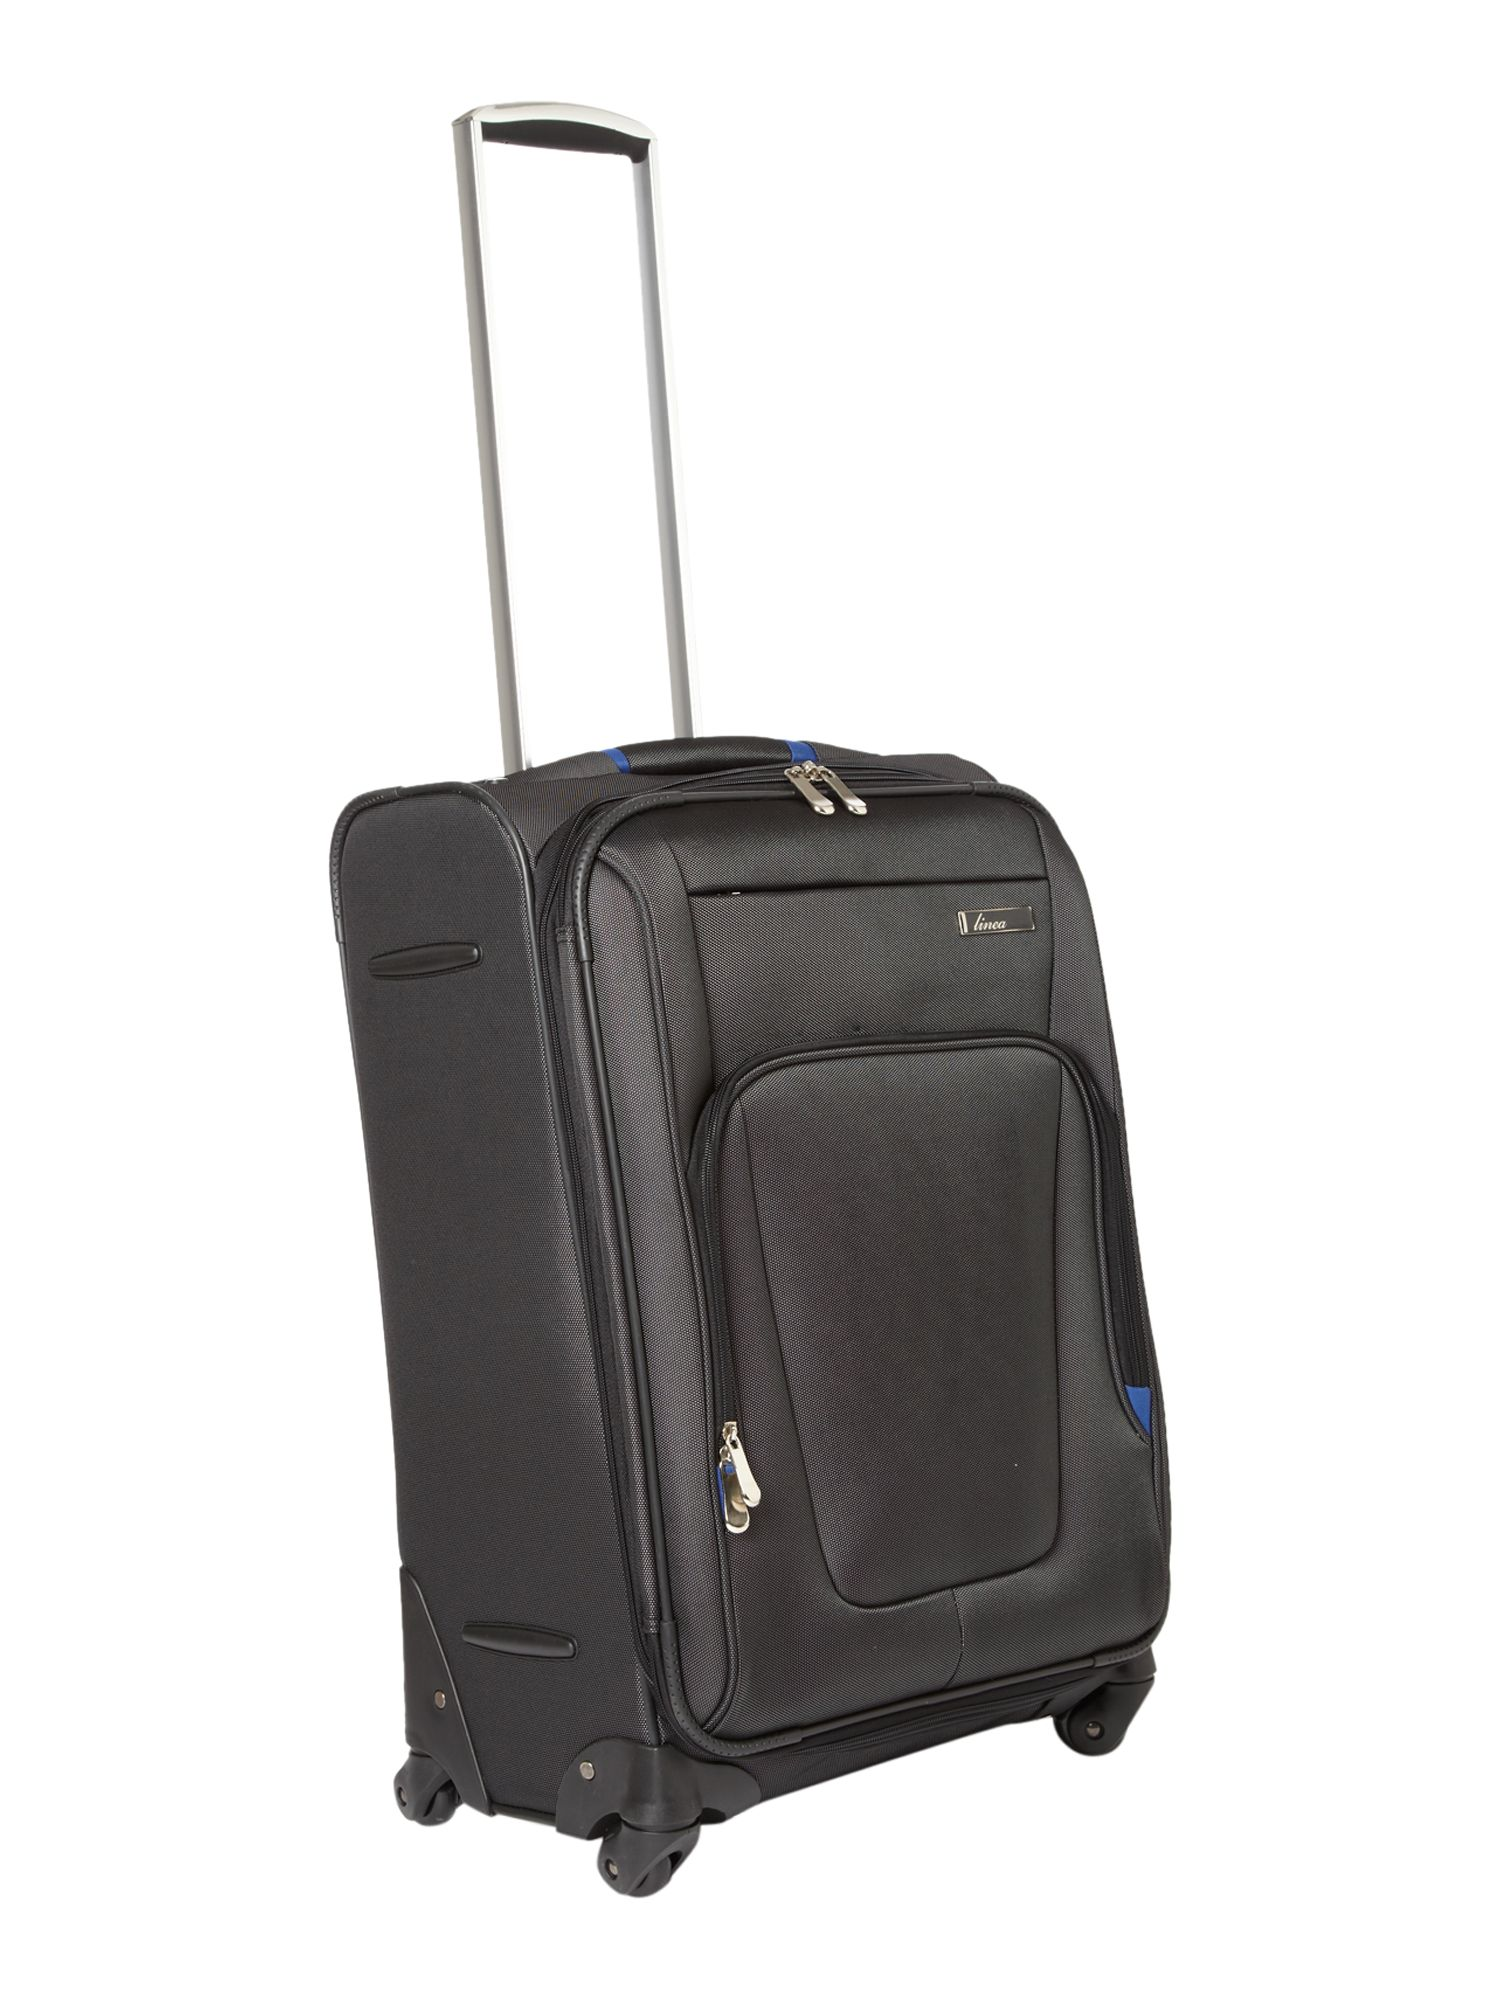 Metro 2 Black 65cm 4 Wheel Case